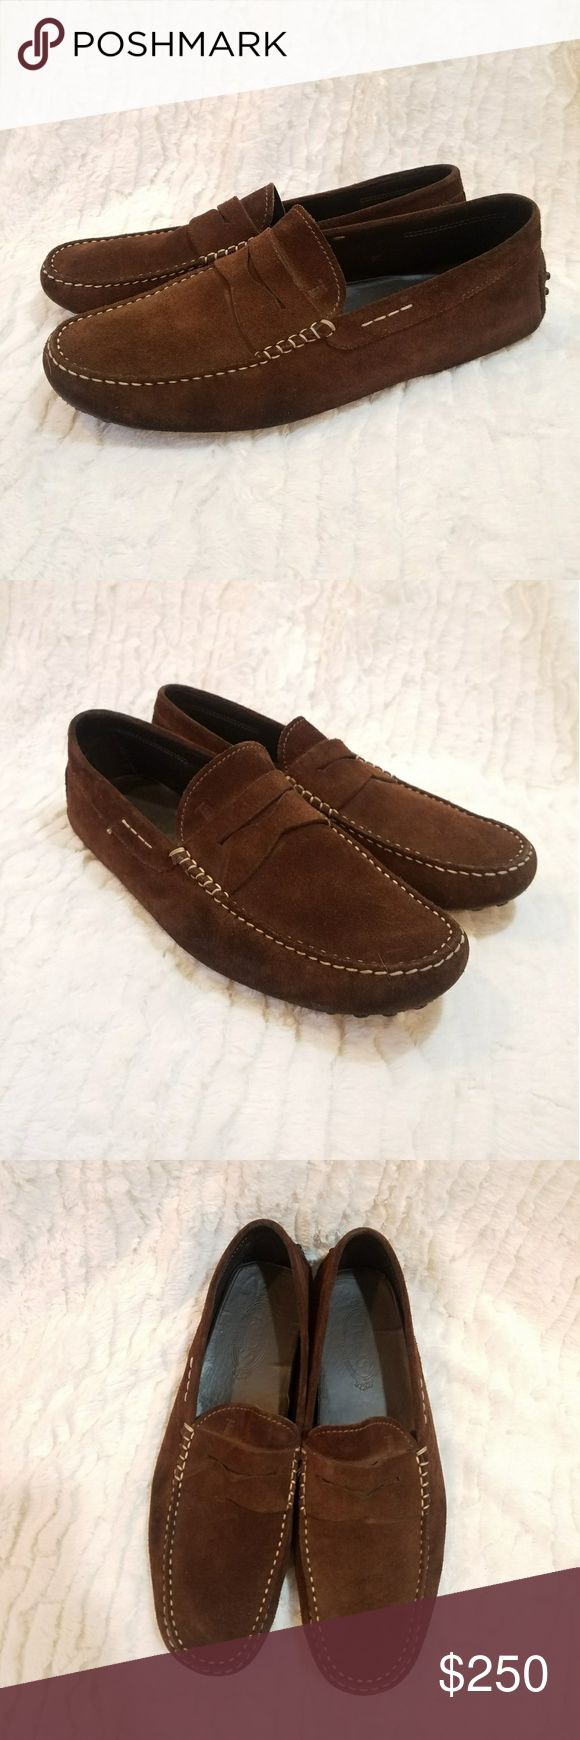 TOD'S BROWN SUEDE LOAFERS Lightly pre-loved Tod's brown suede loafers with rubber dot soles. Great condition, they still have plenty of life left in them. Make me an offer I can't refuse. Happy poshing! Tod's Shoes Loafers & Slip-Ons